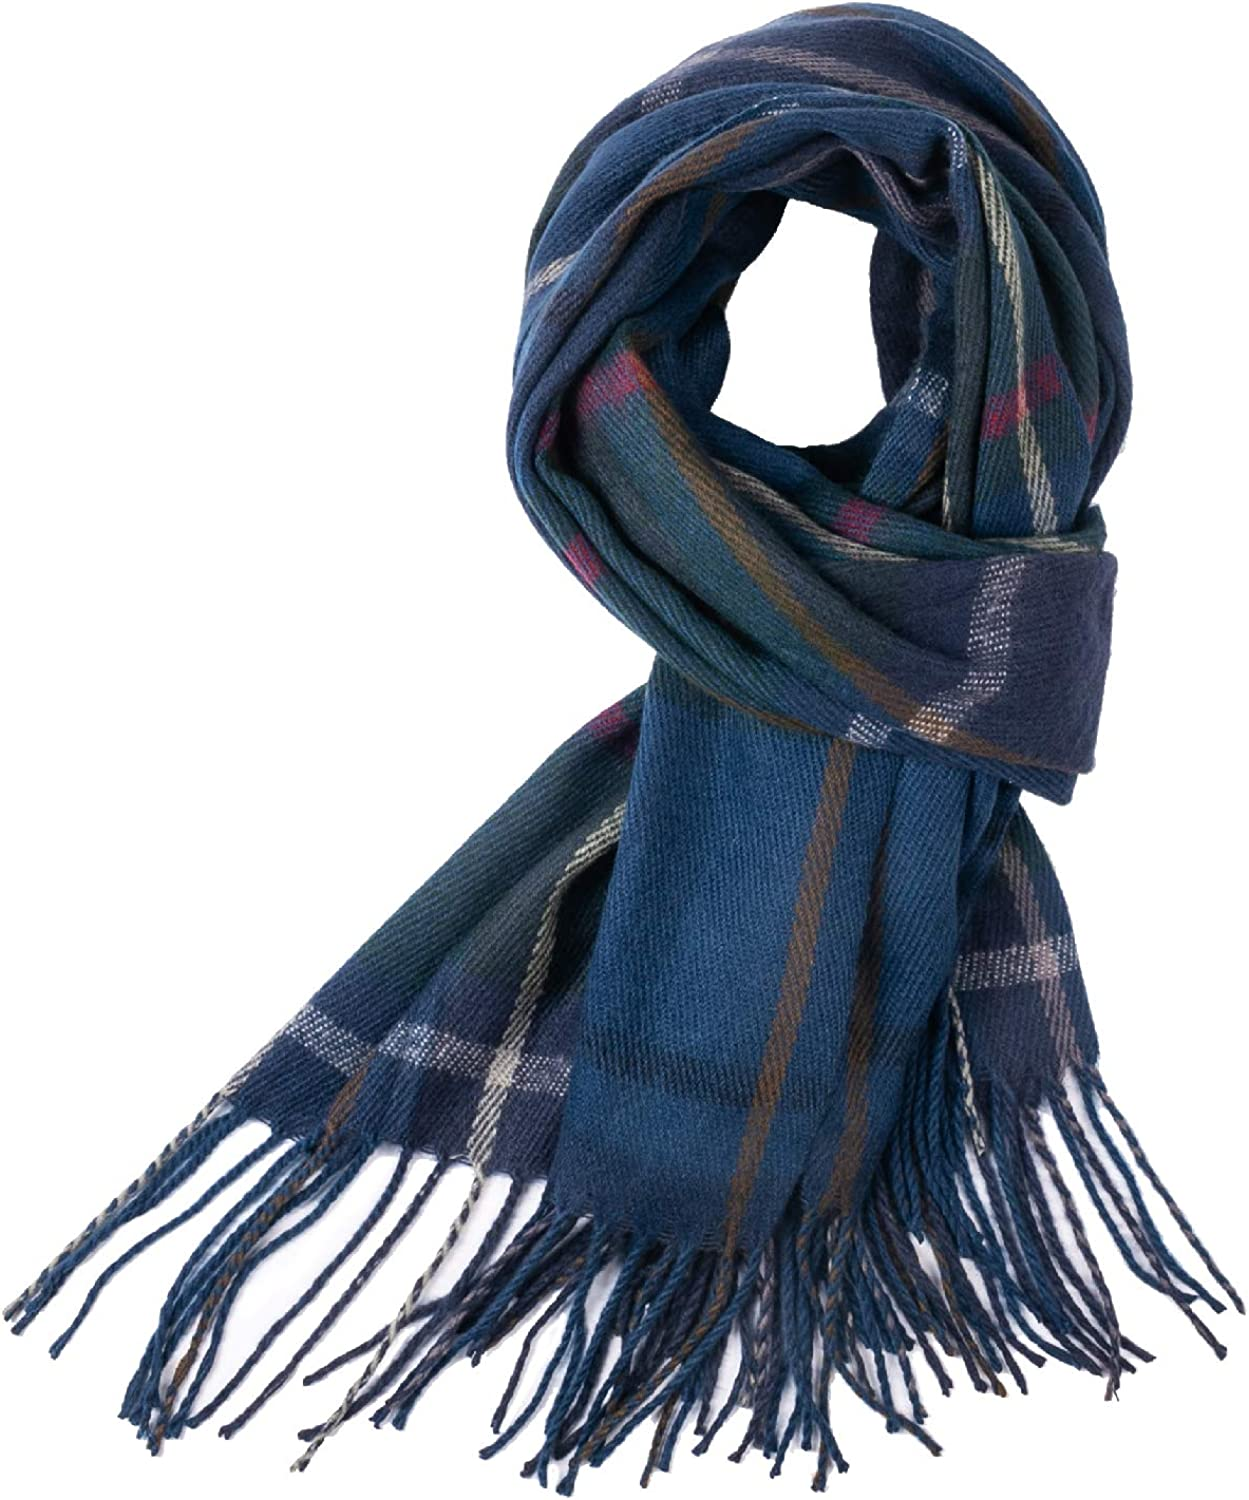 Supxing Women Plaid Checked Charlotte Mall Cashmere Super Feel Winter So Scarf- Inventory cleanup selling sale